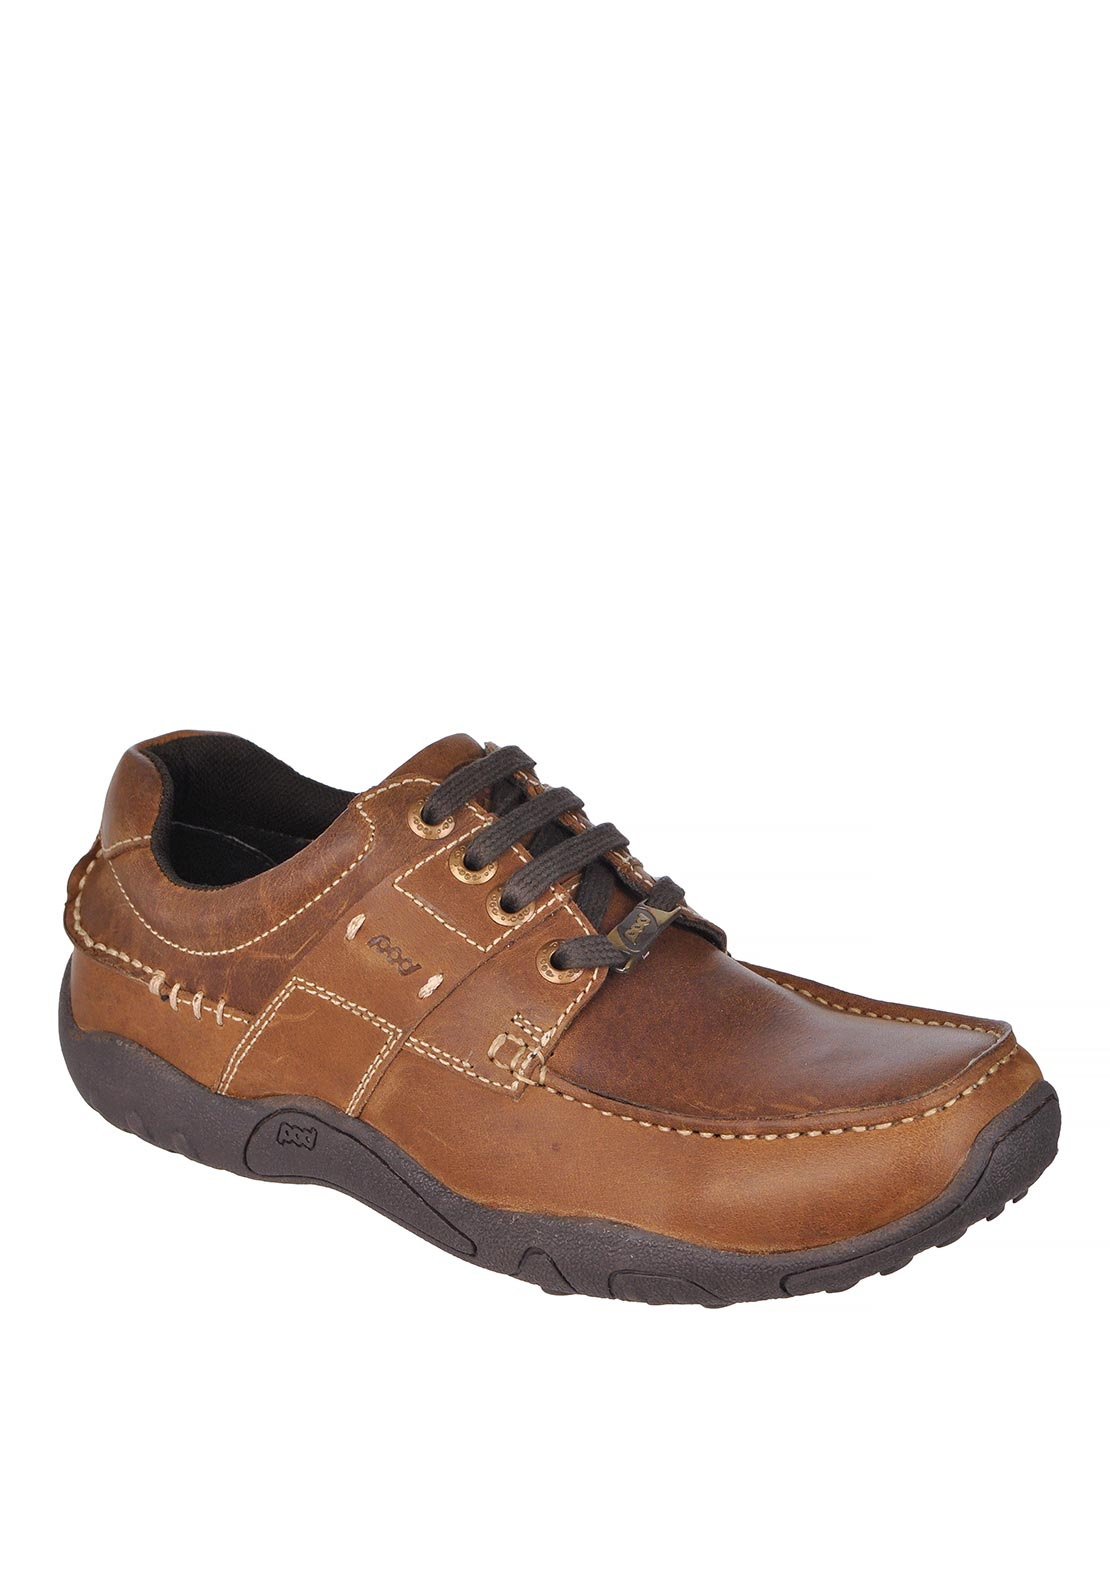 Pod Mens Leather Lace Up Shoes, Brown